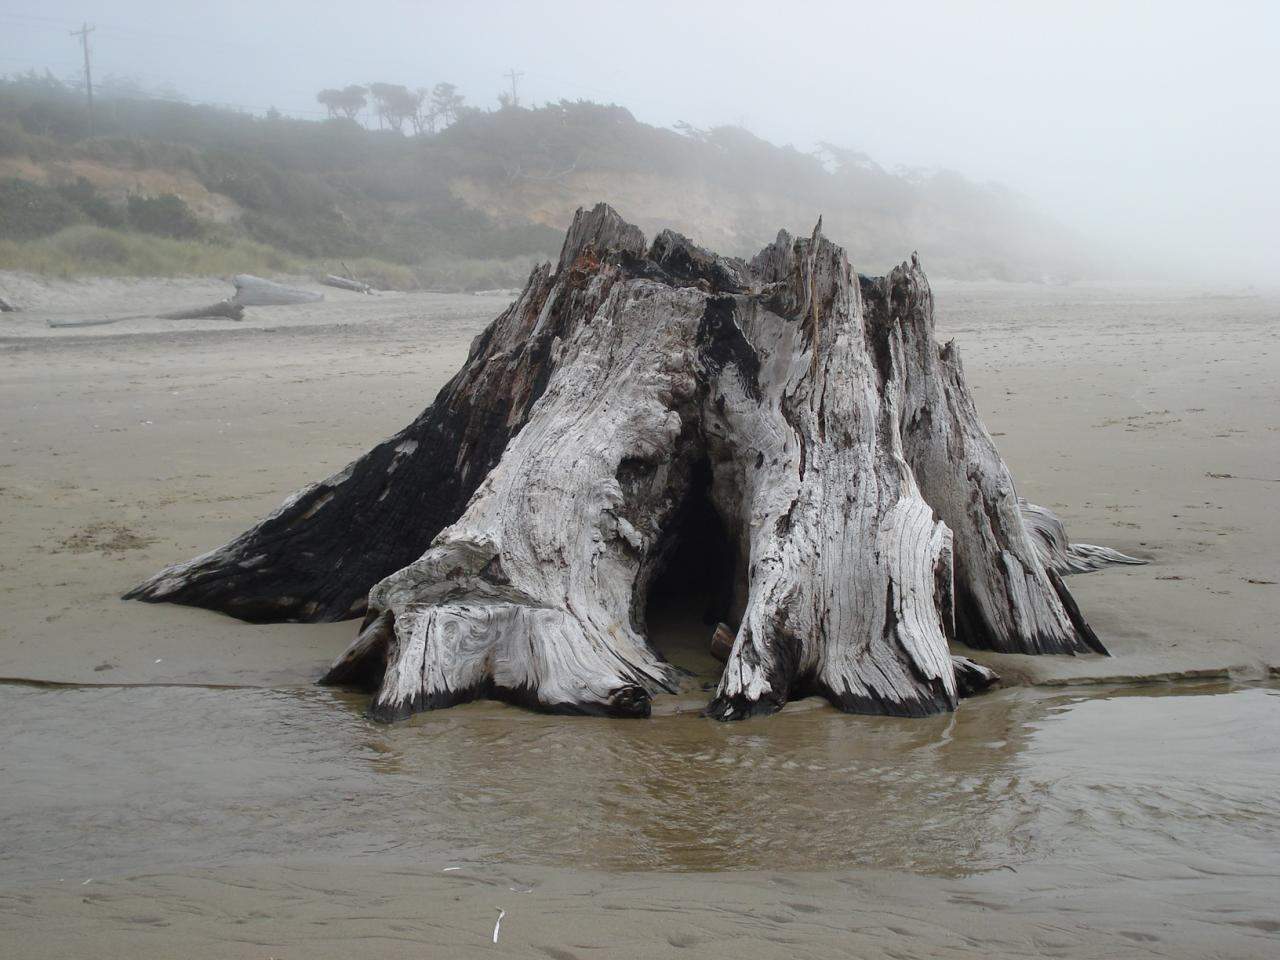 Large tree stump near cliff area with stream water passing